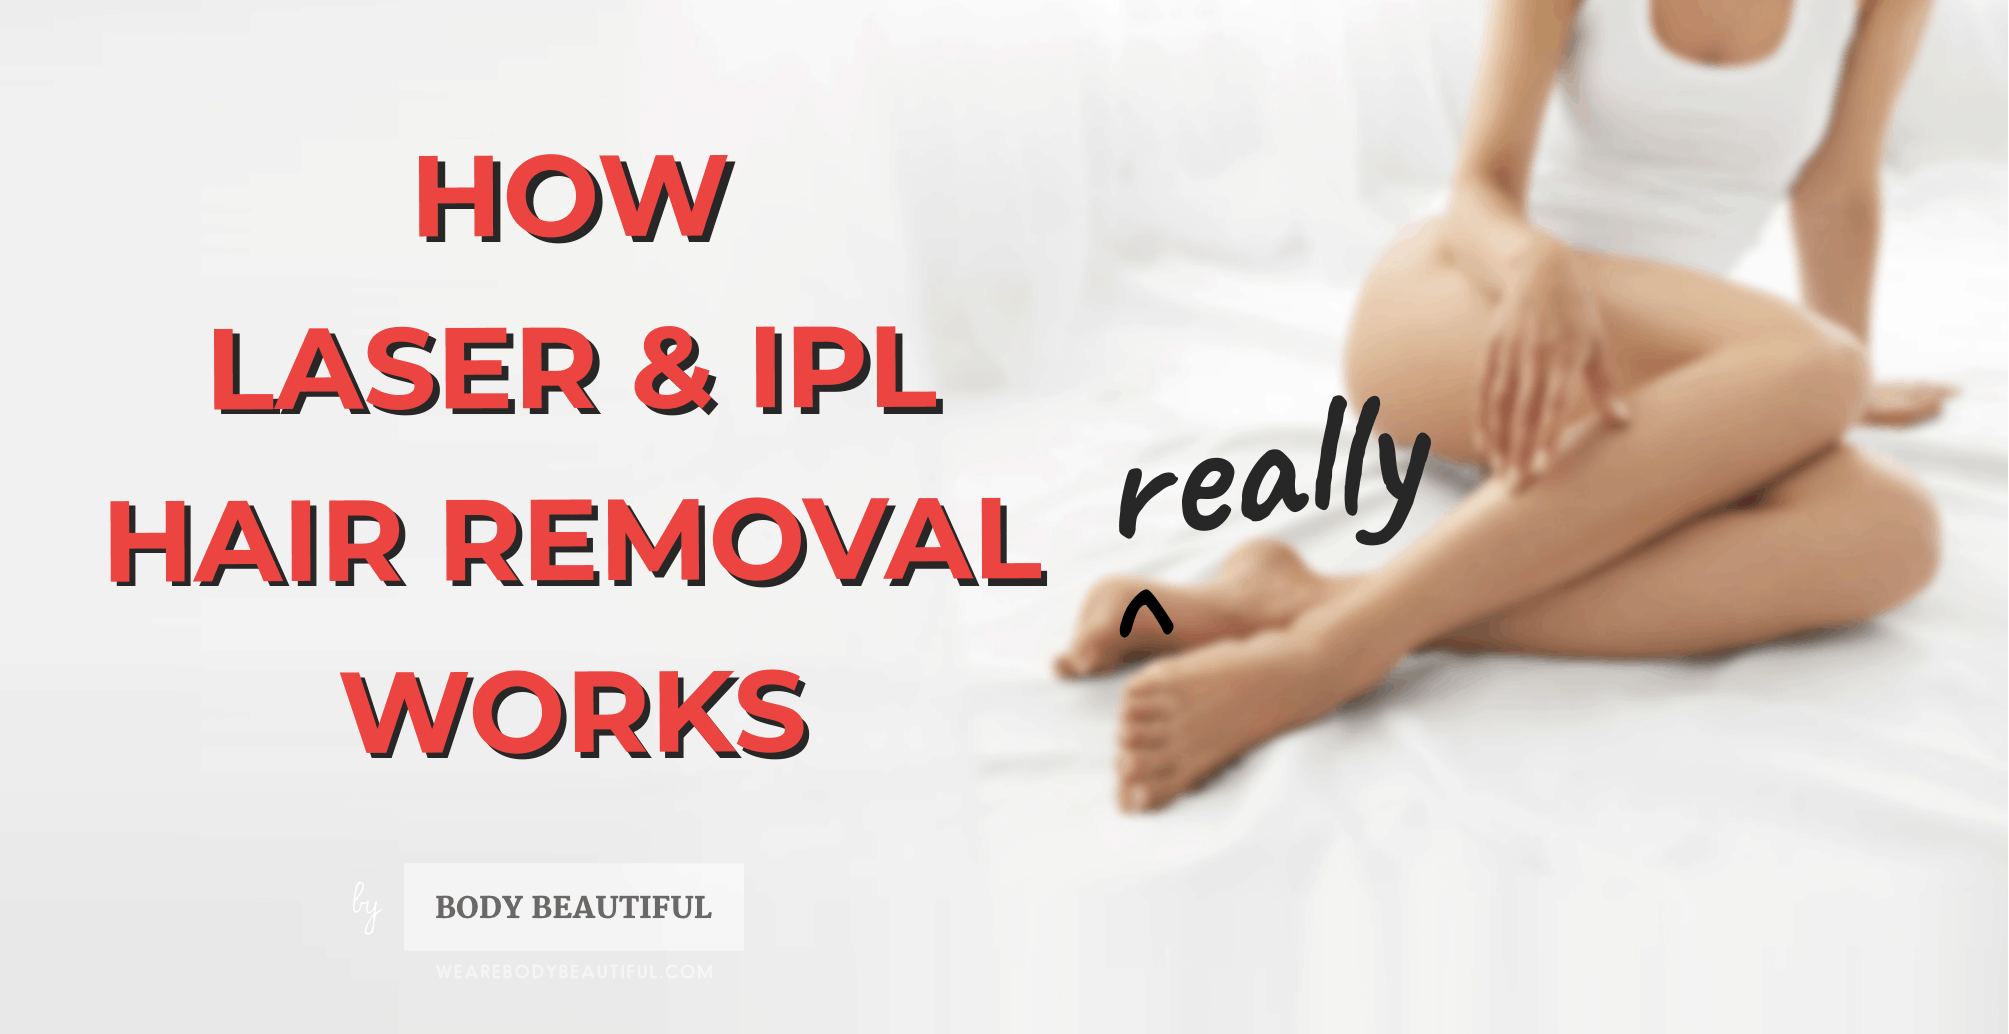 Learn the science behind laser & IPL hair removal with WeAreBodyBeautiful.com